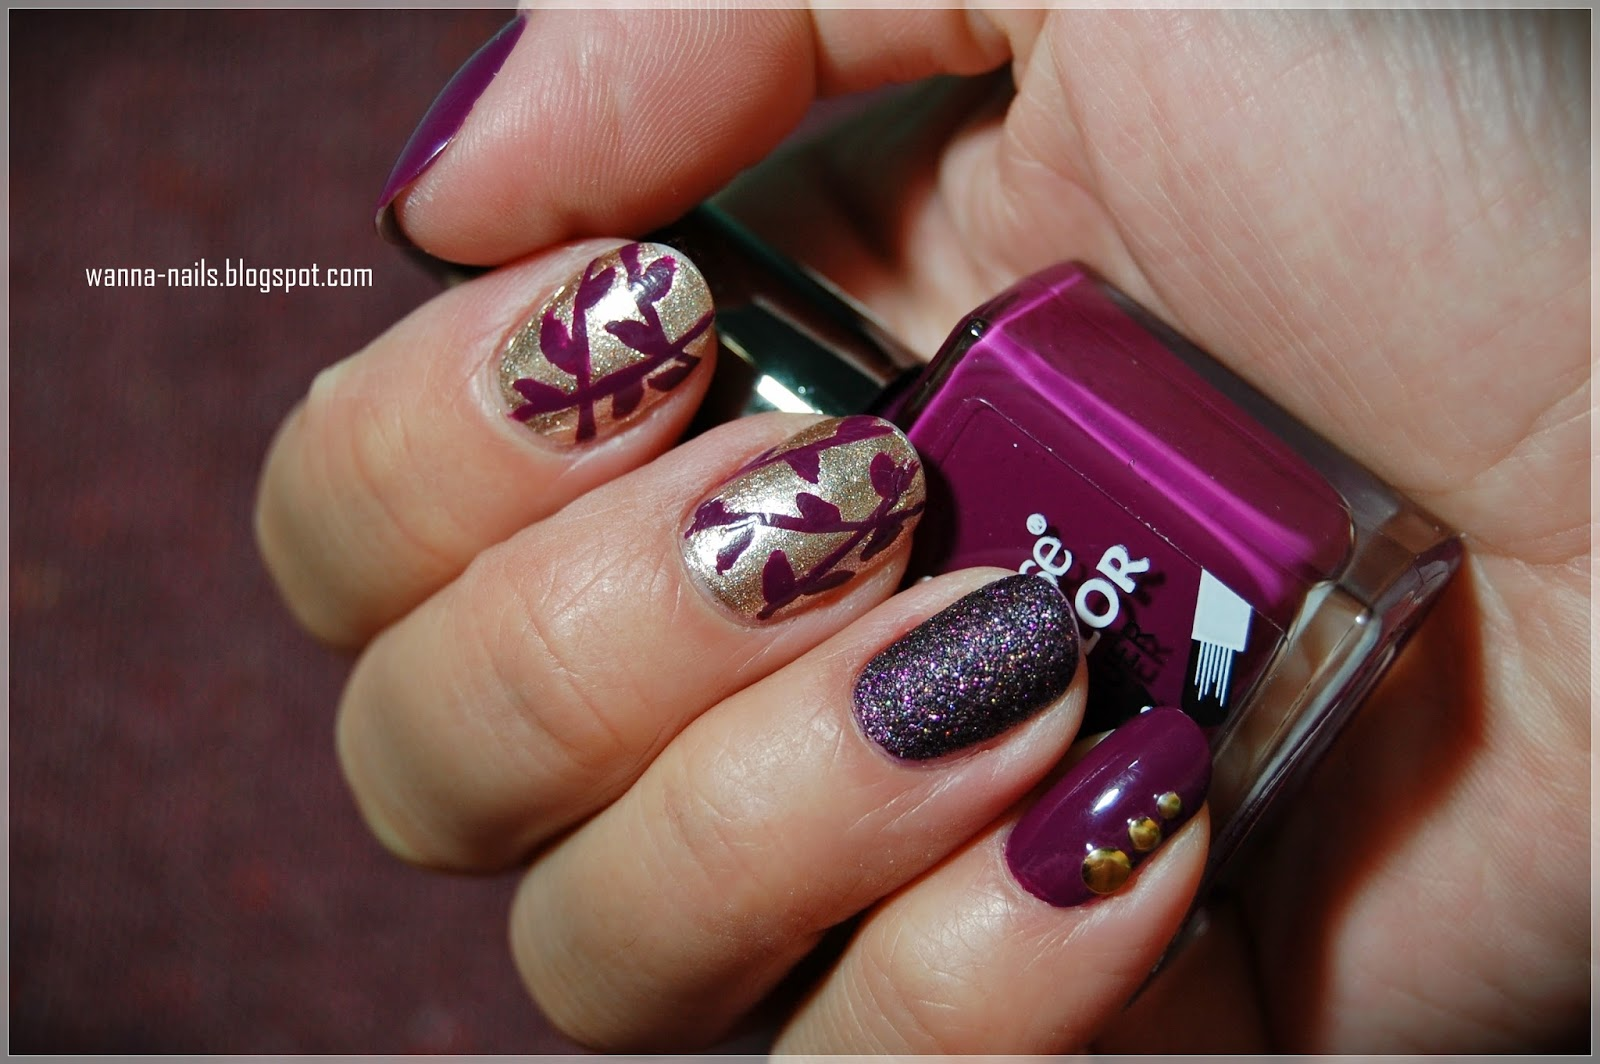 Autumn manicure: what is it